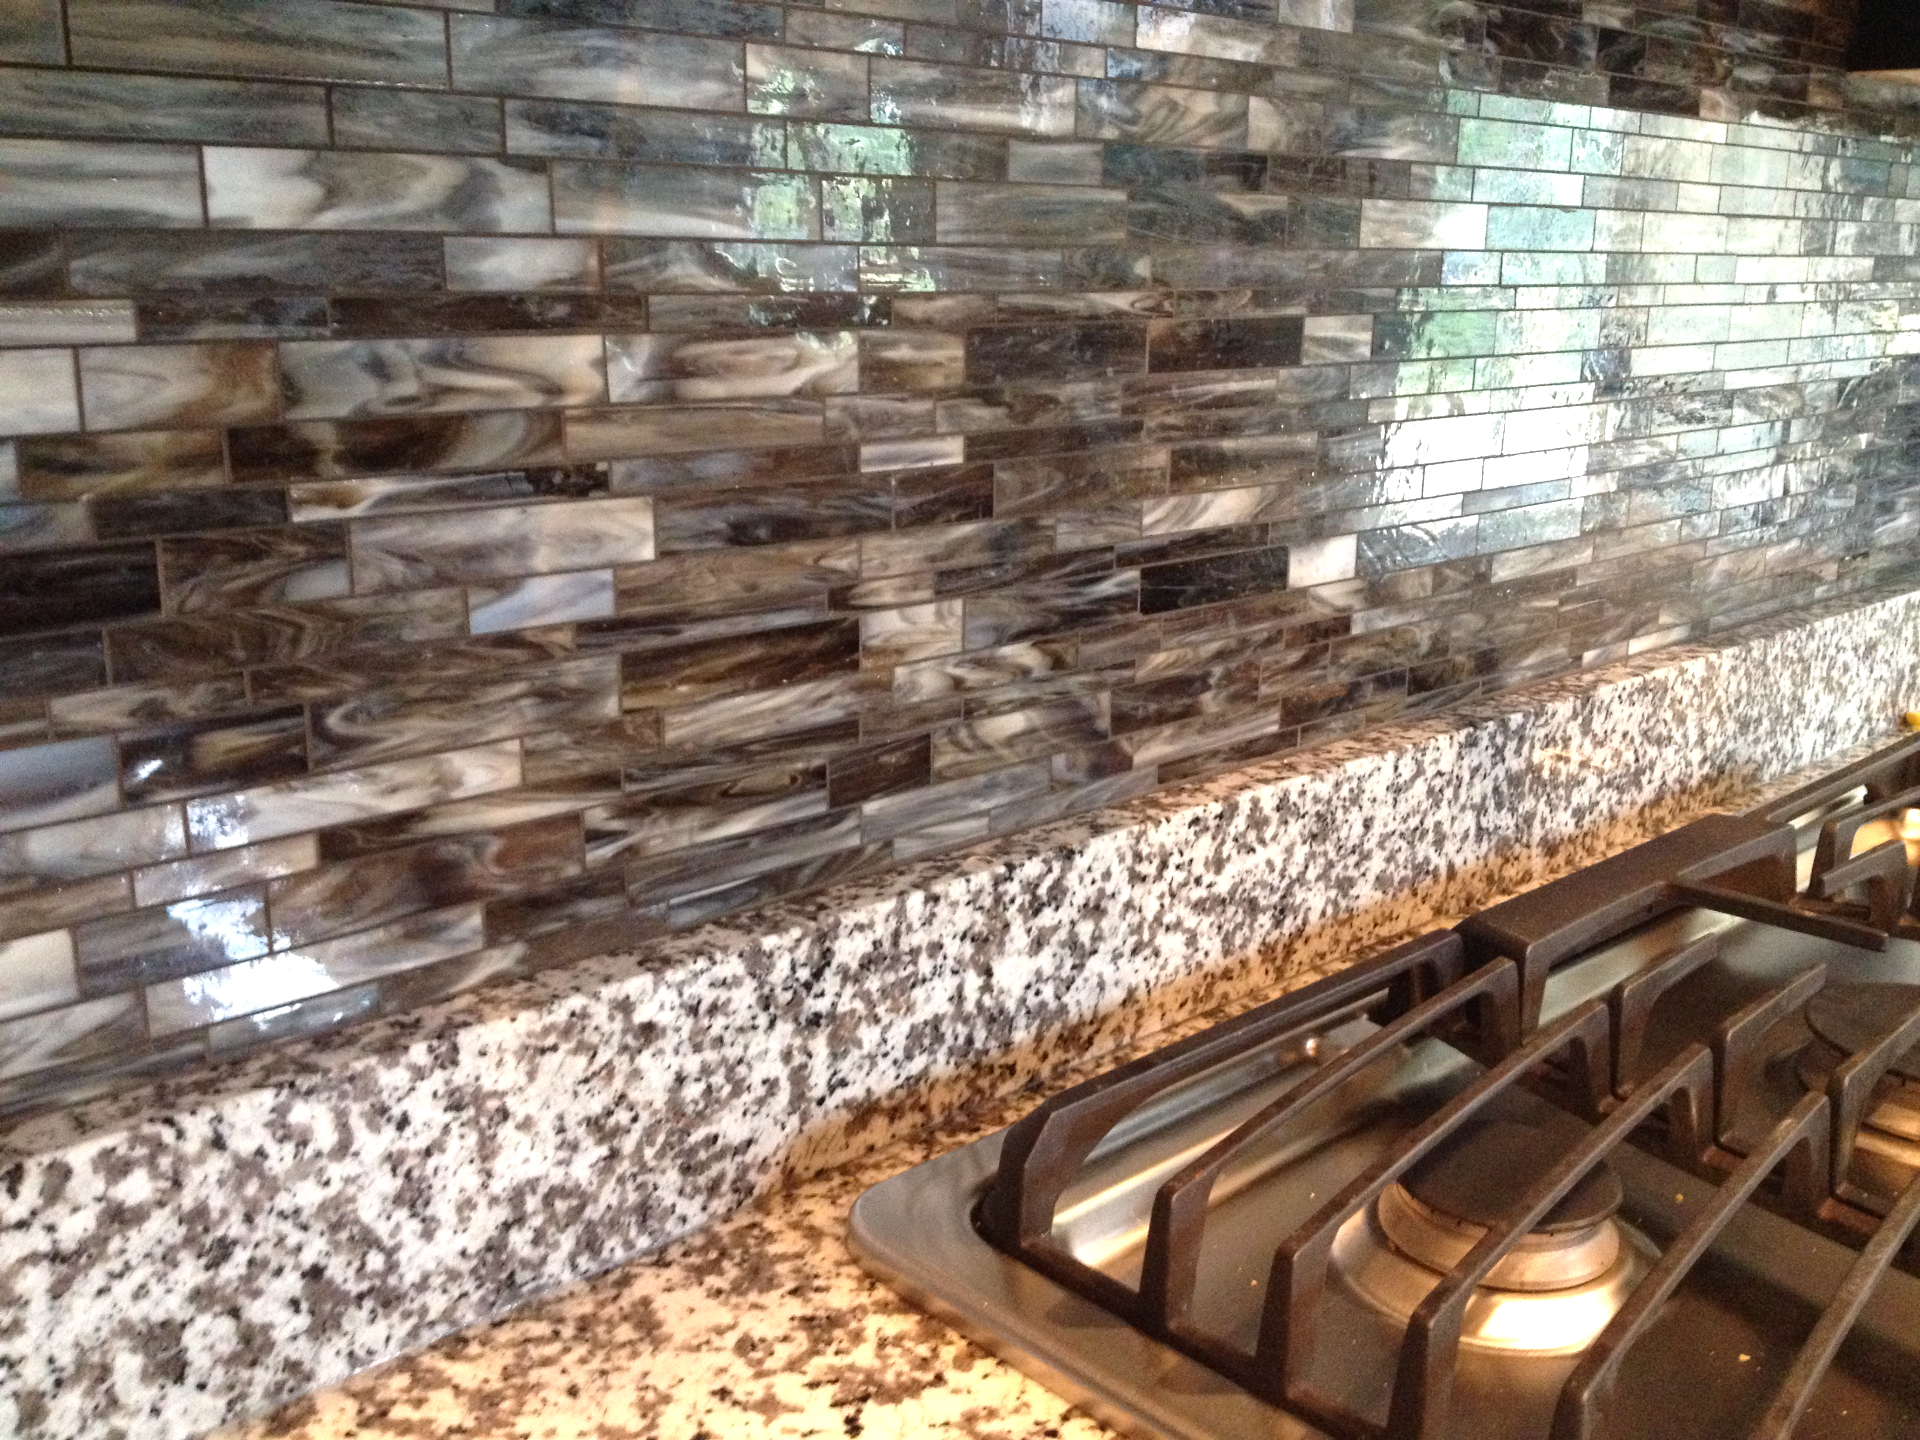 Tile back splash A1